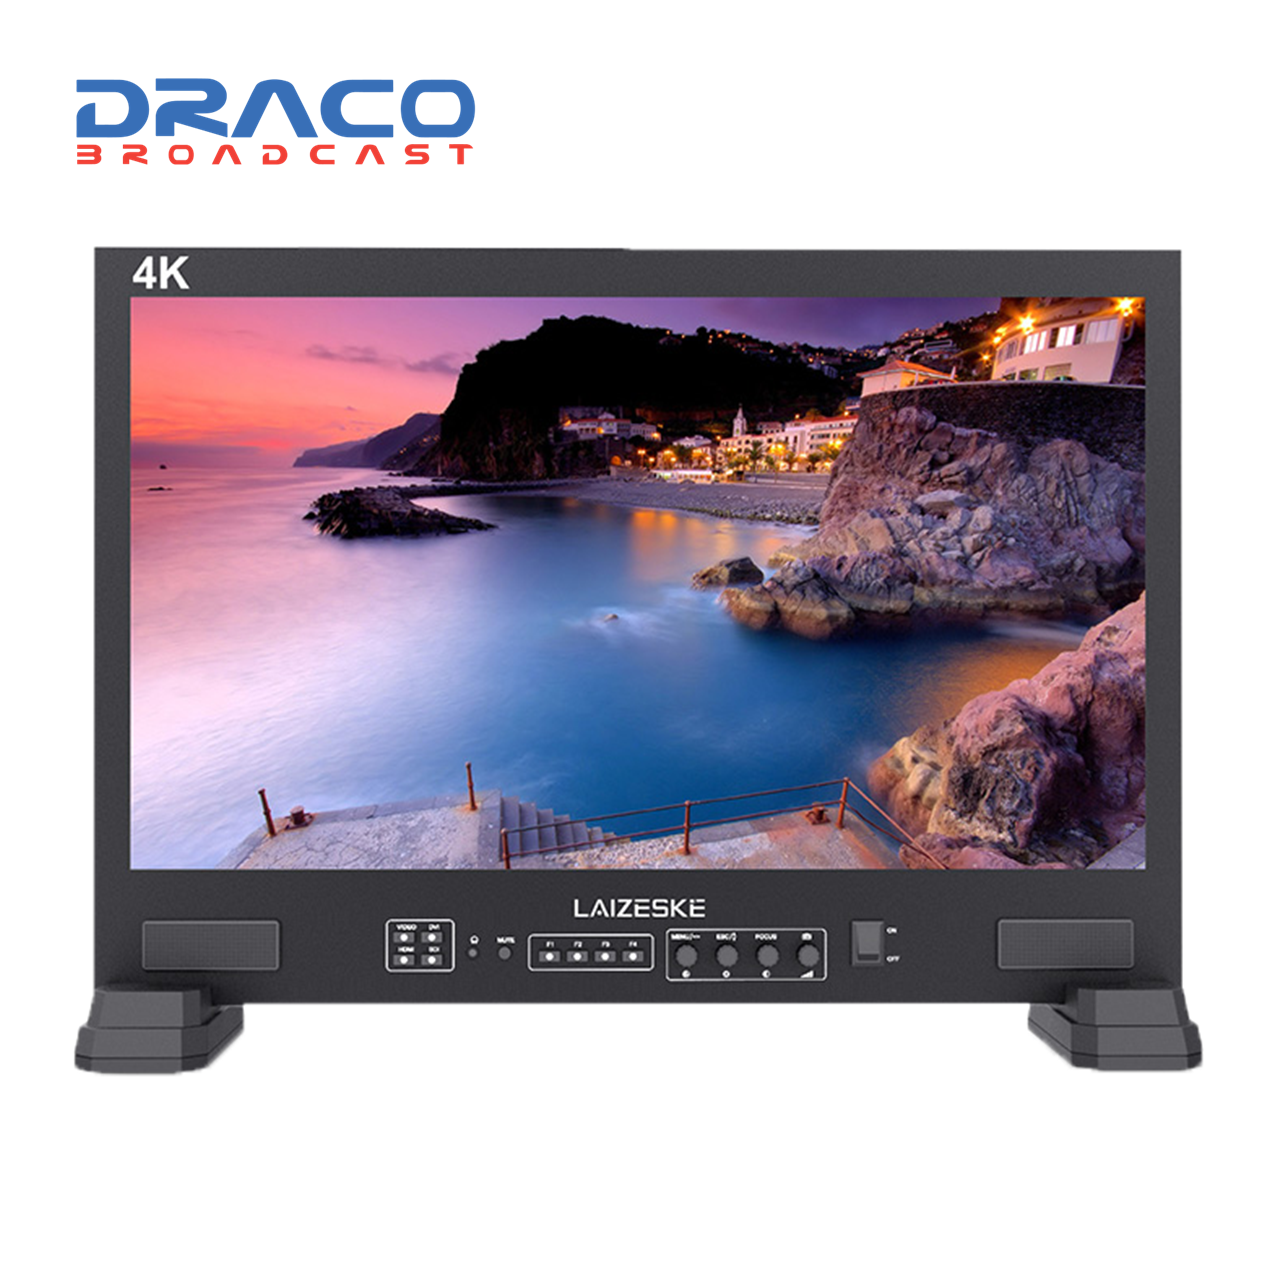 Laizeske 21.5″ Full HD Broadcast Studio Monitor